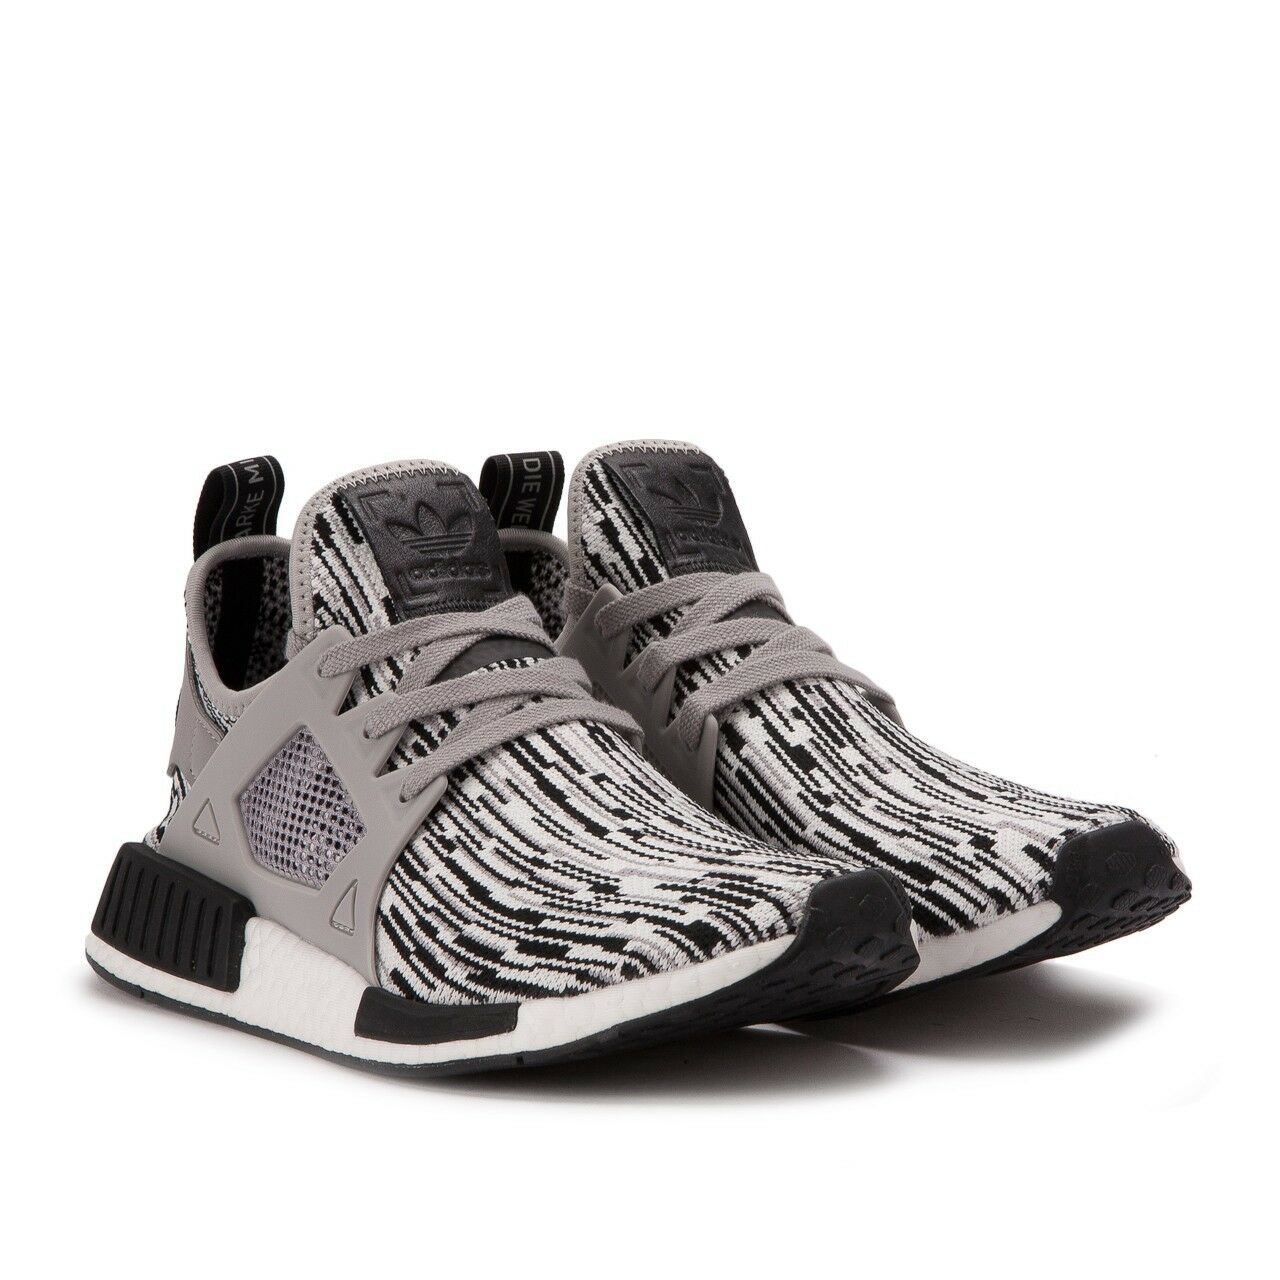 Adidas Originals NMD XR1 BY1910 Black Grey White Mens